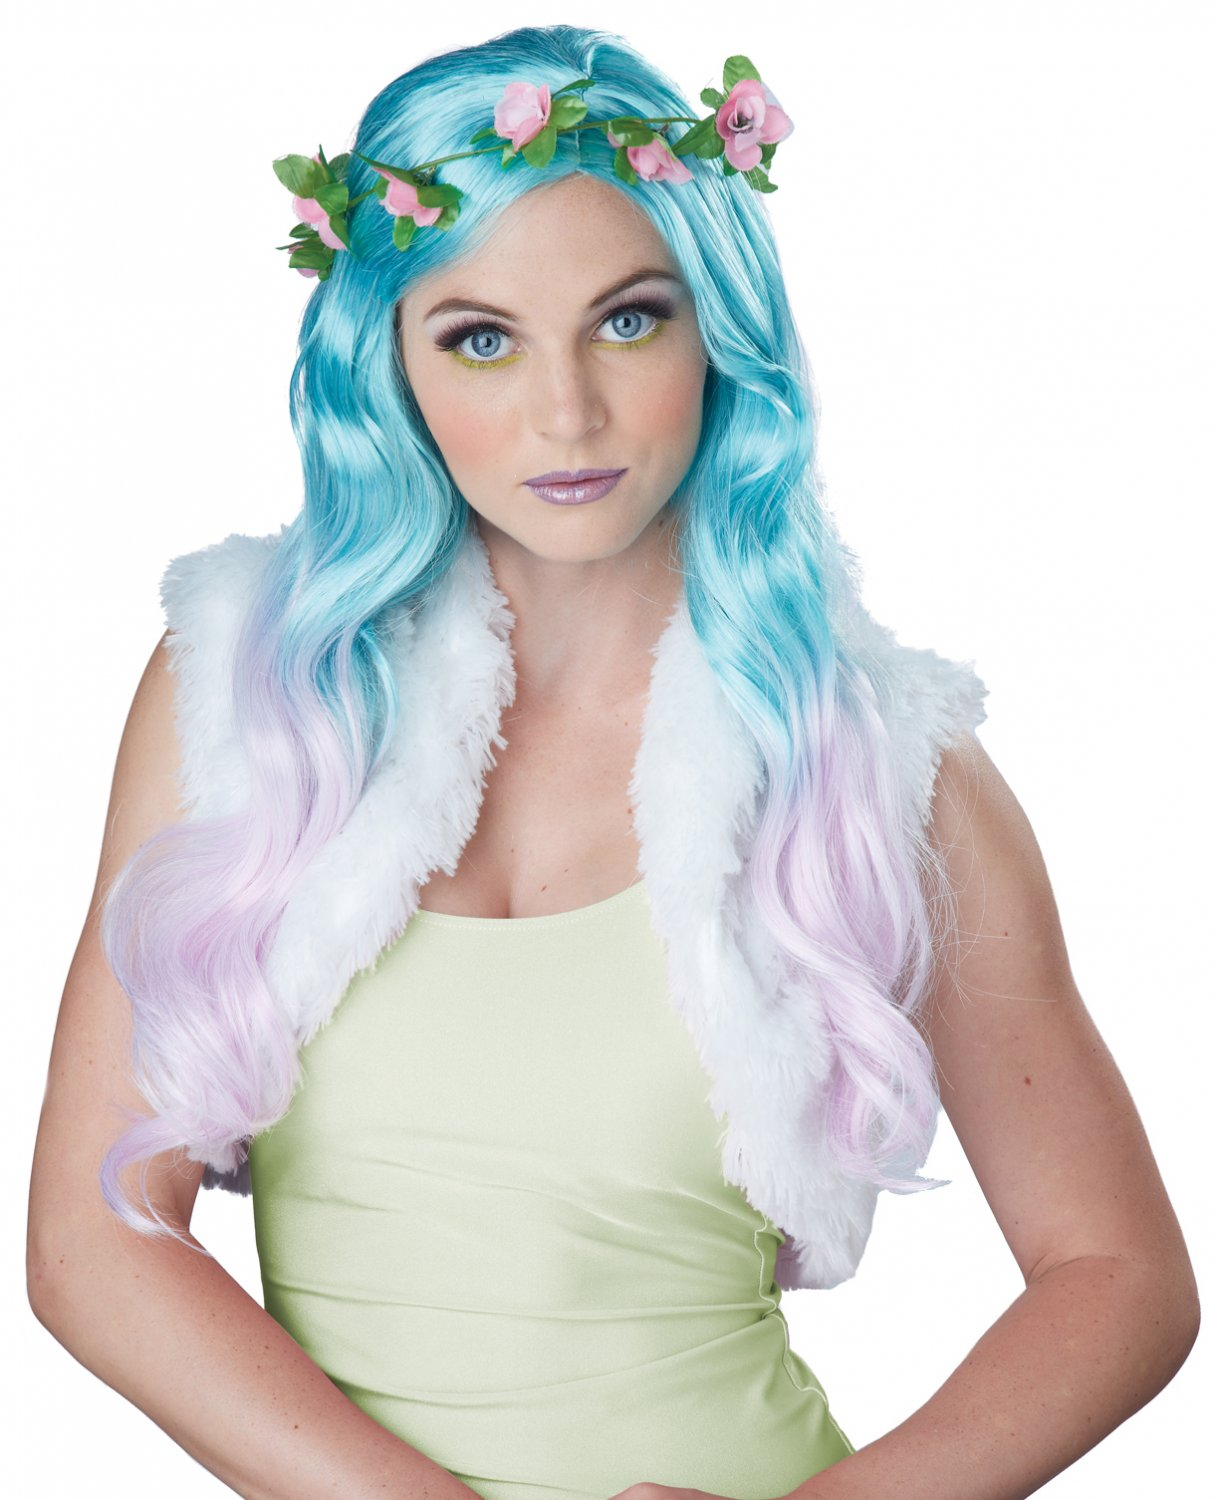 #70813 Tinkerbell Floral Fantasy Adult Costume Wig